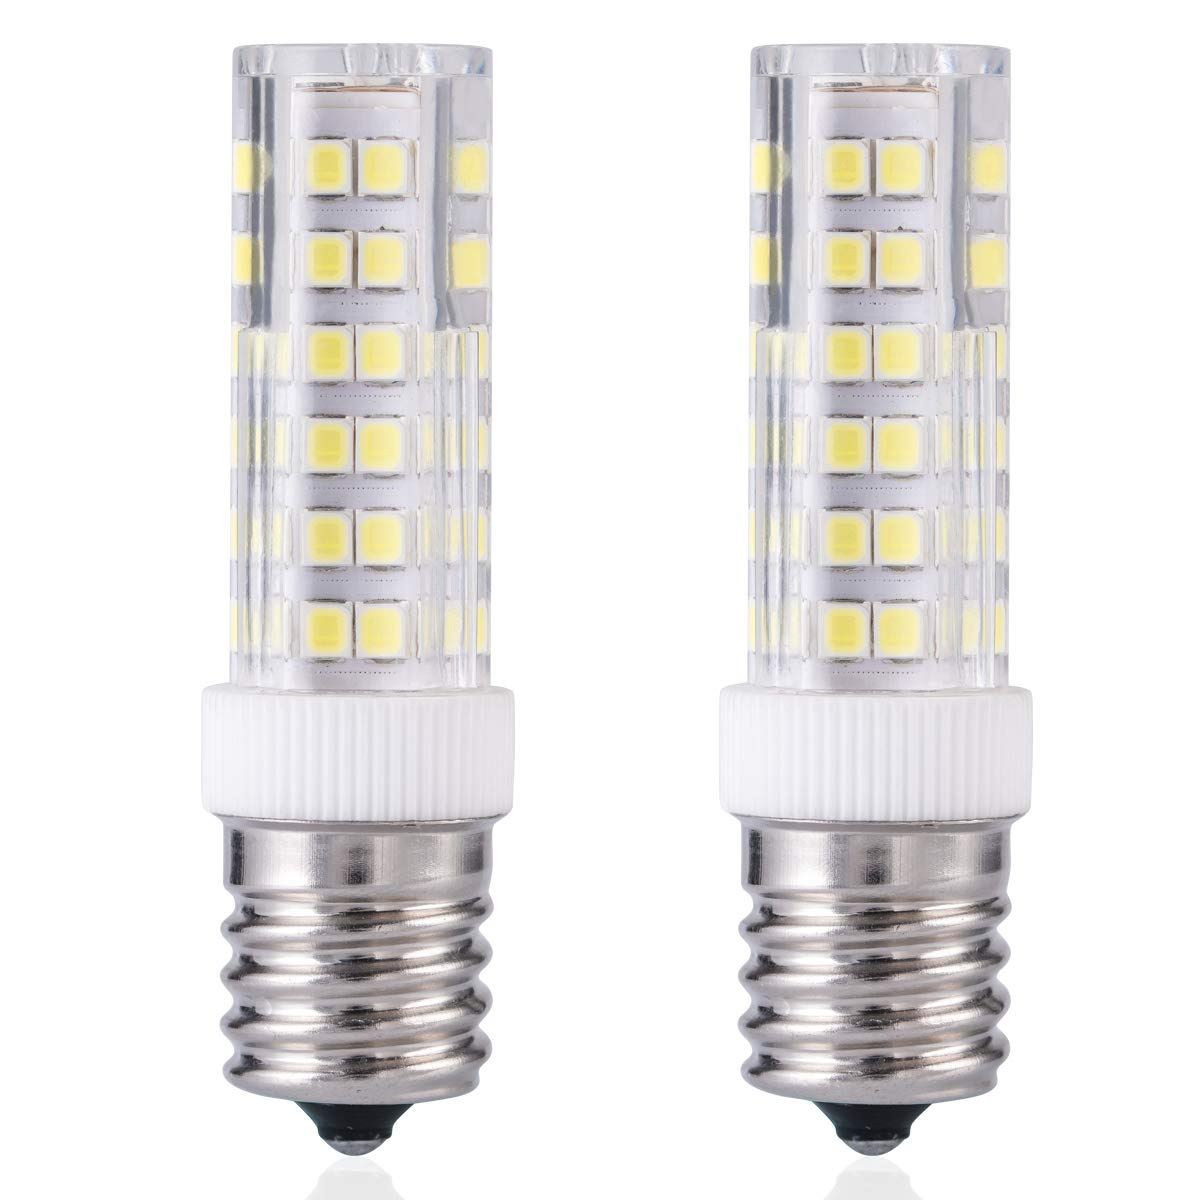 E17 LED Bulb Over Counter Microwave Oven Light Dimmable 6 Watt Daylight White 6000K for Large Christmas Lights and Ceiling Fan Light Fixture (Pack of 2)